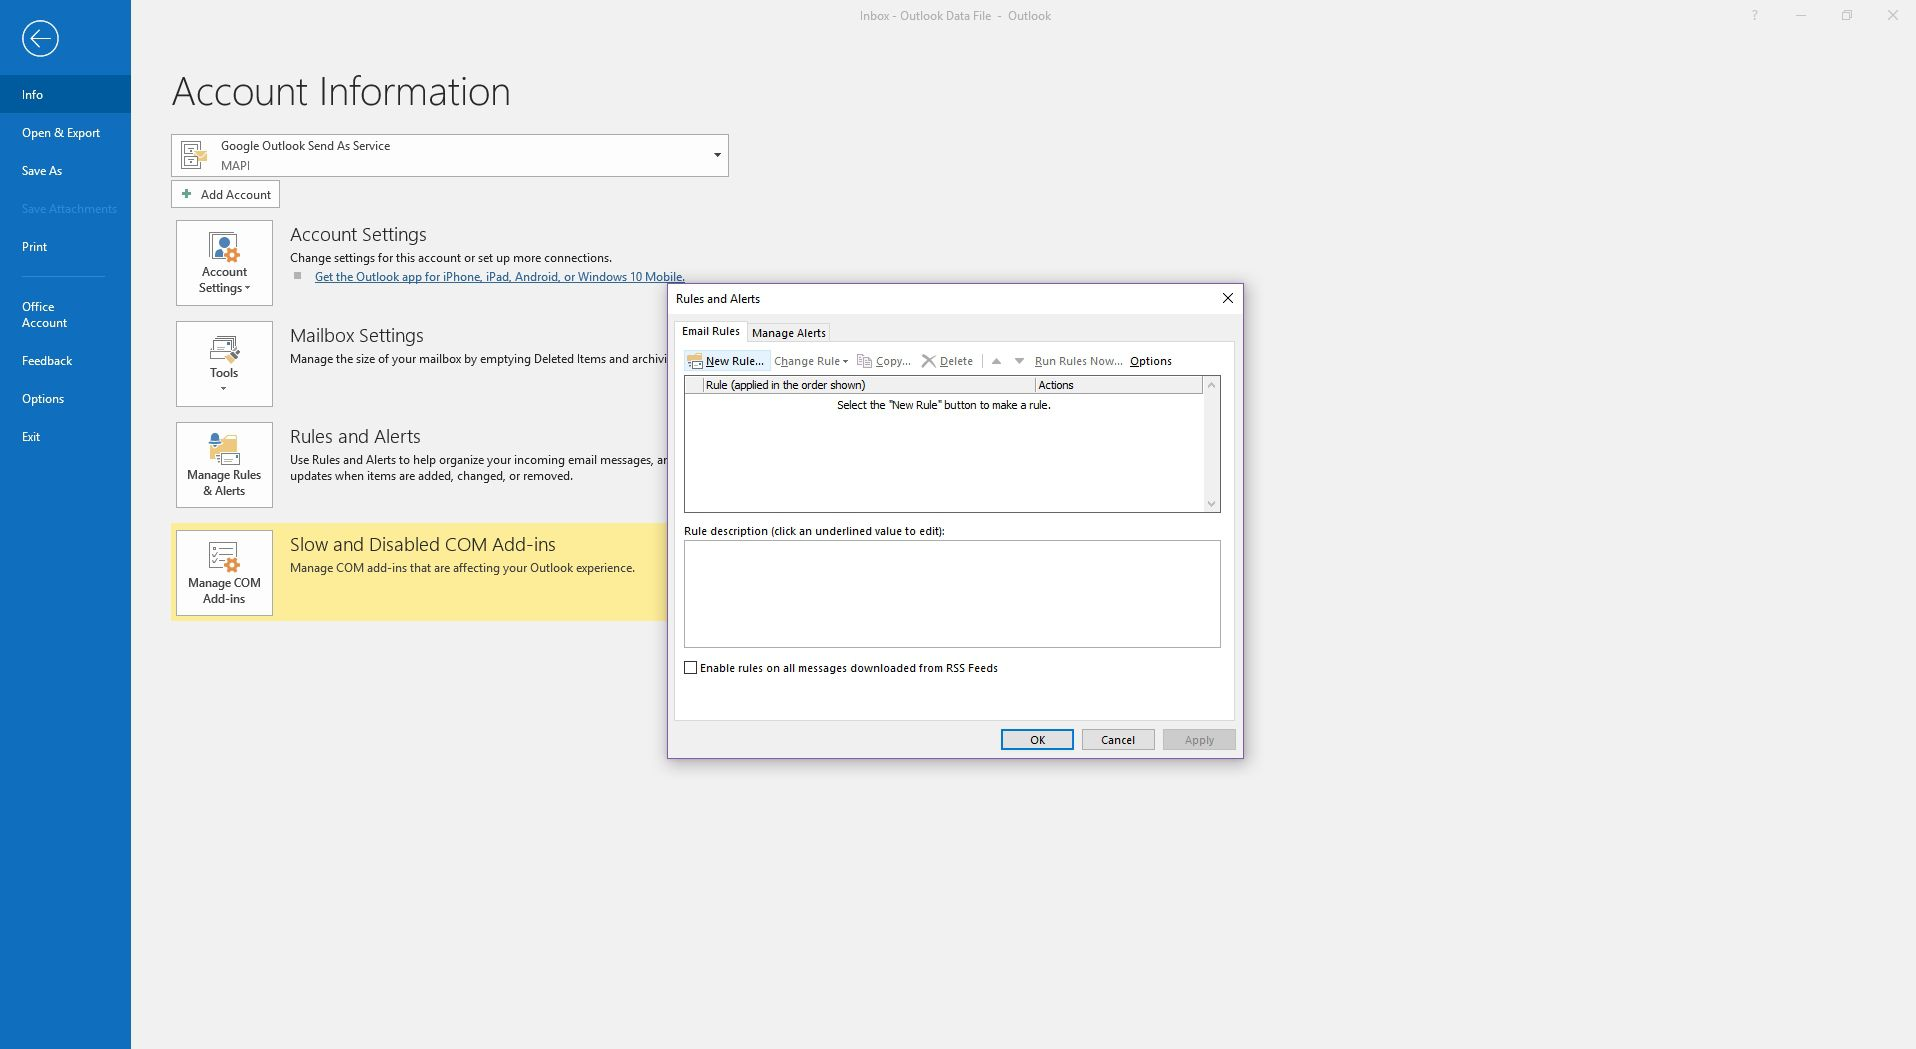 Creating a new rule in Outlook.